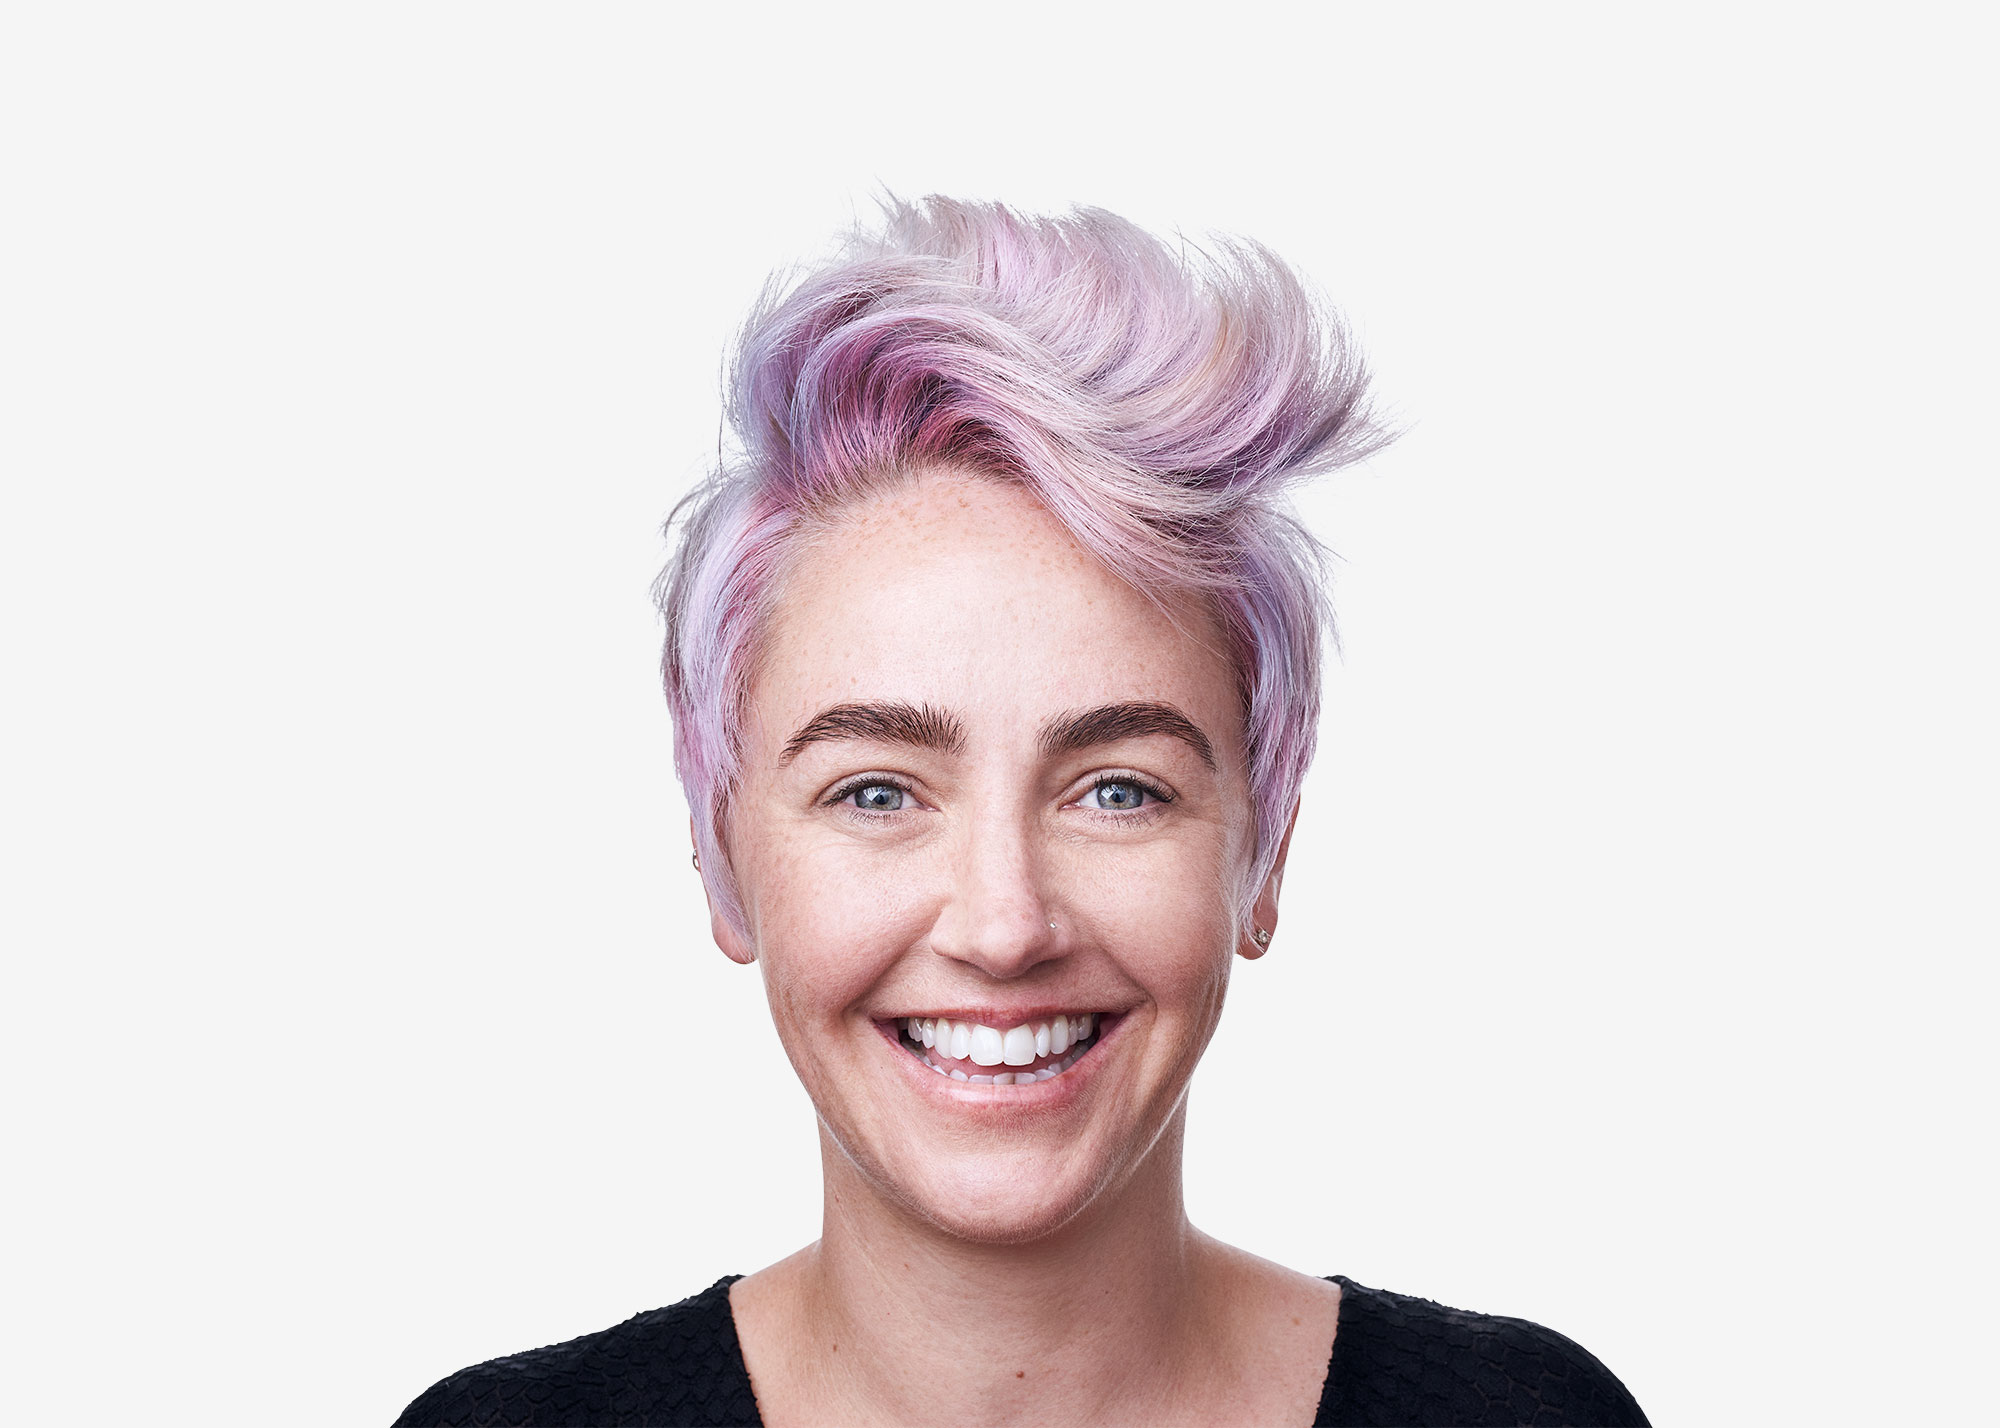 Waldo-contact-lenses-see-the-happiness-campaign-girl-pink-hair-smiling-sane-seven-2000px-wide